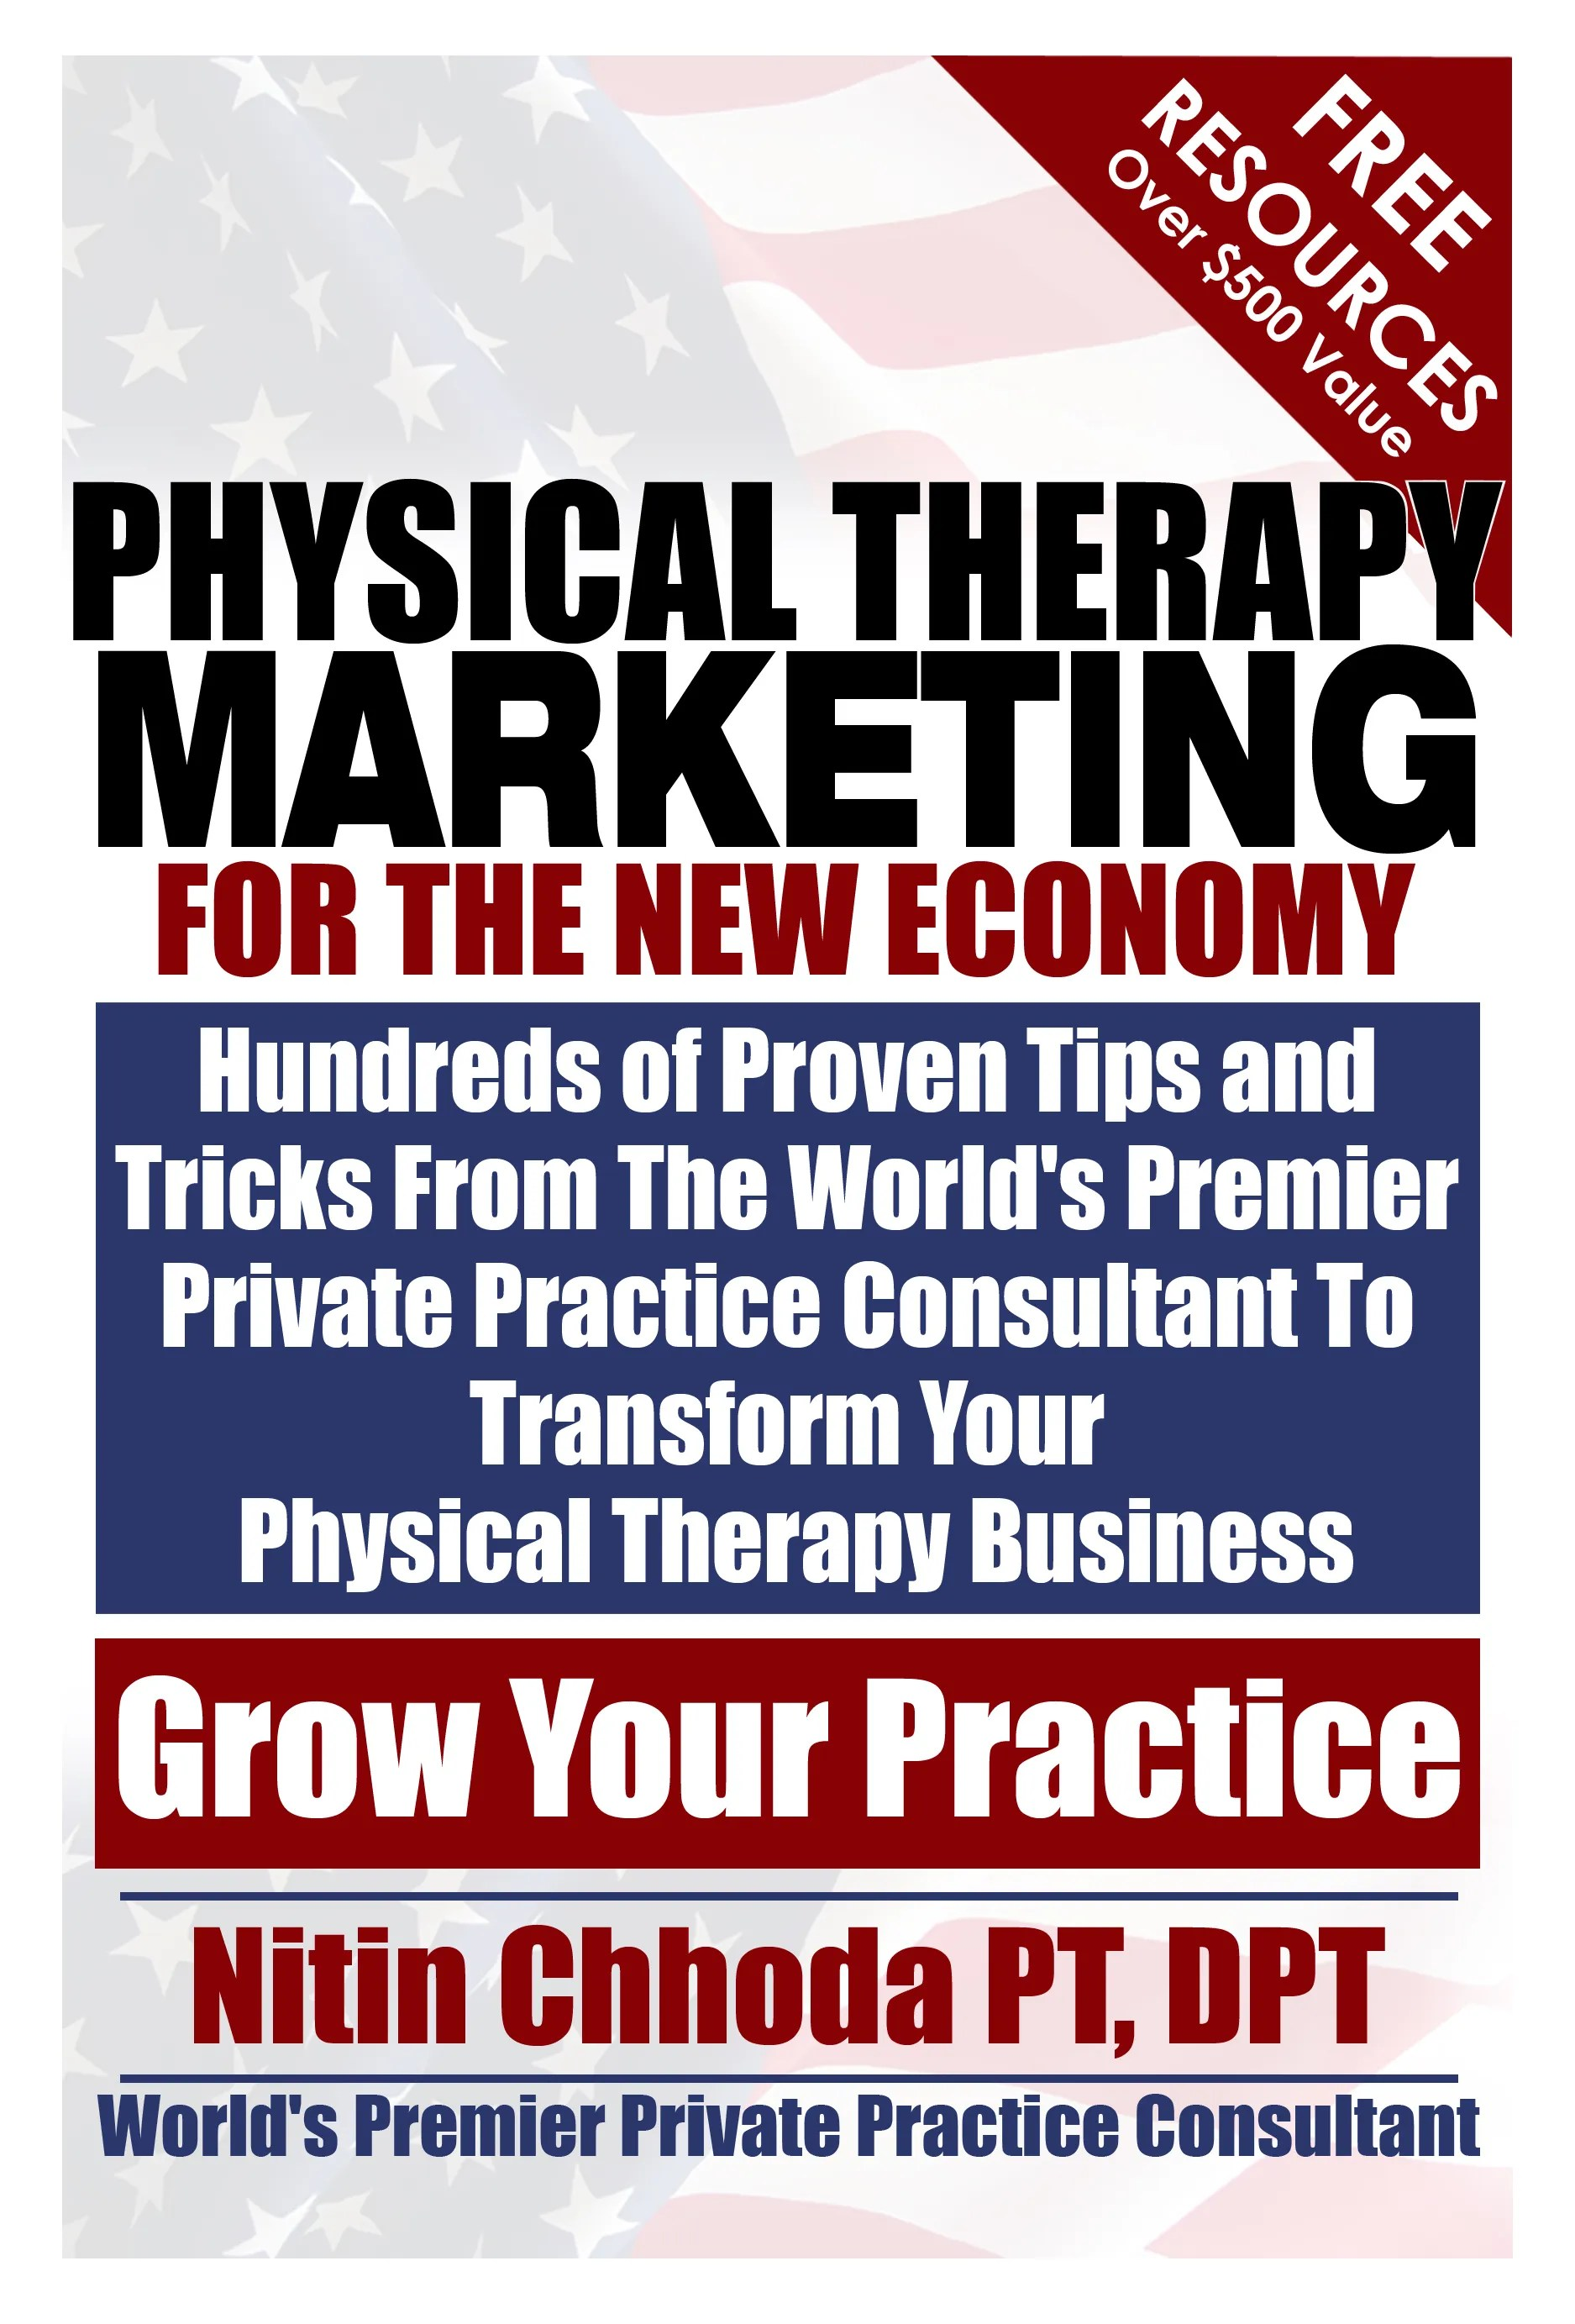 Physical Therapy Marketing For The New Economy by Nitin Chhoda  Read Online